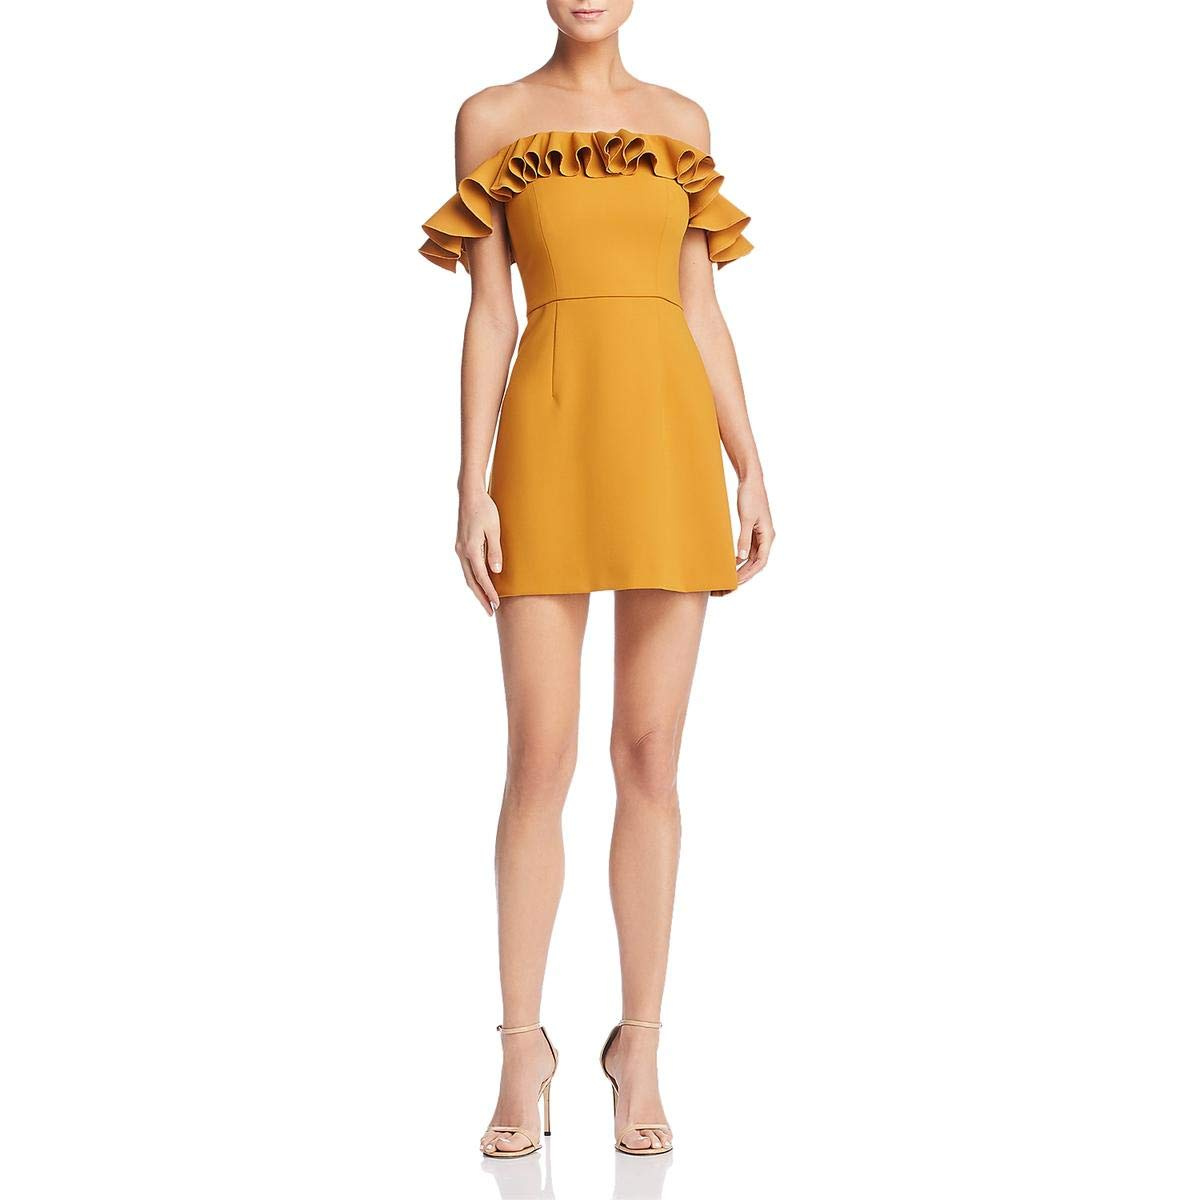 Available at Amazon: French Connection Women's Ruffled Off-The-Shoulder Cocktail Dress